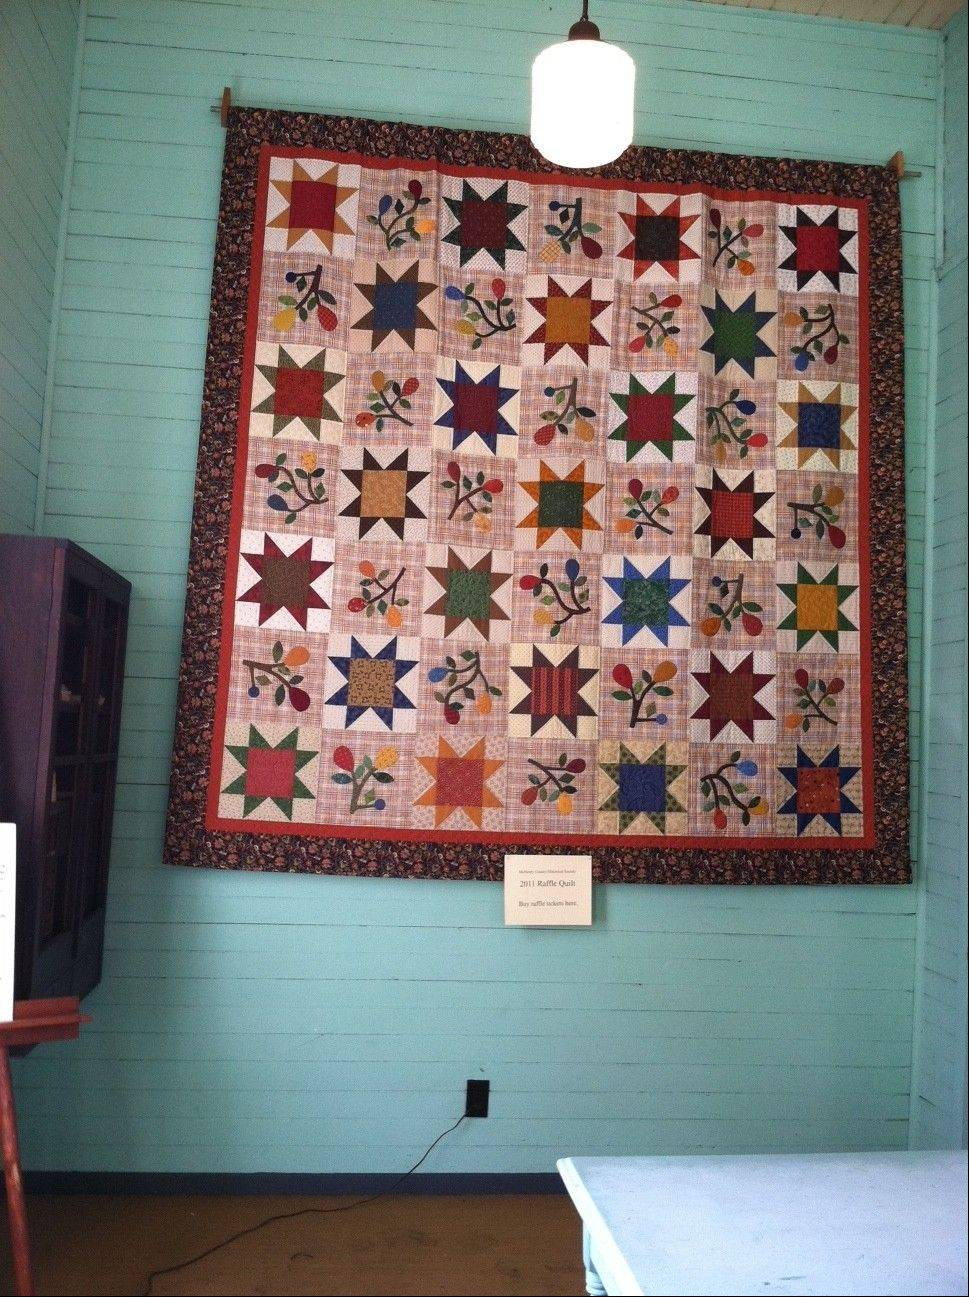 Quilts are on display at Perkins Hall during the 24th annual McHenry County Autumn Drive.